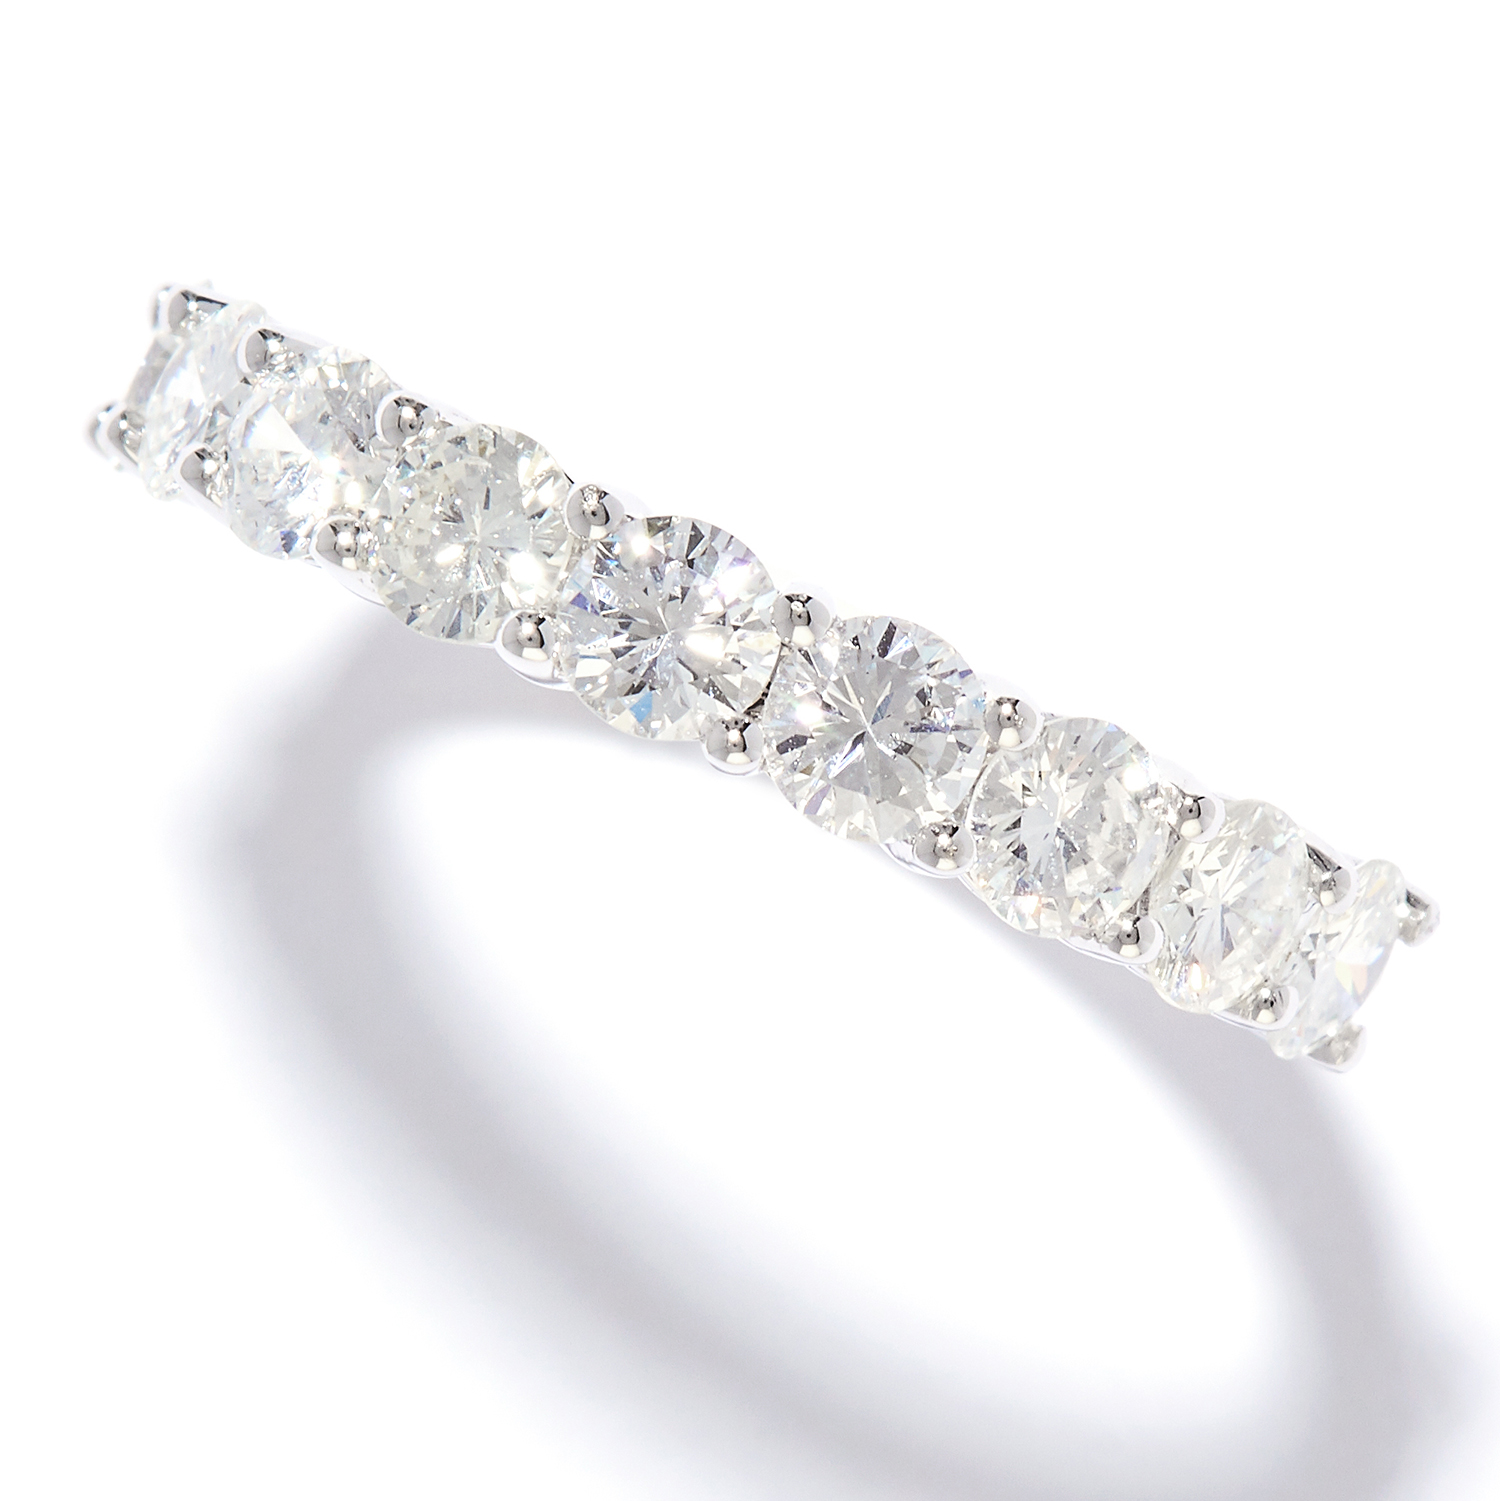 1.02 CARAT DIAMOND RING in 18ct white gold, set with nine round cut diamonds totalling approximately